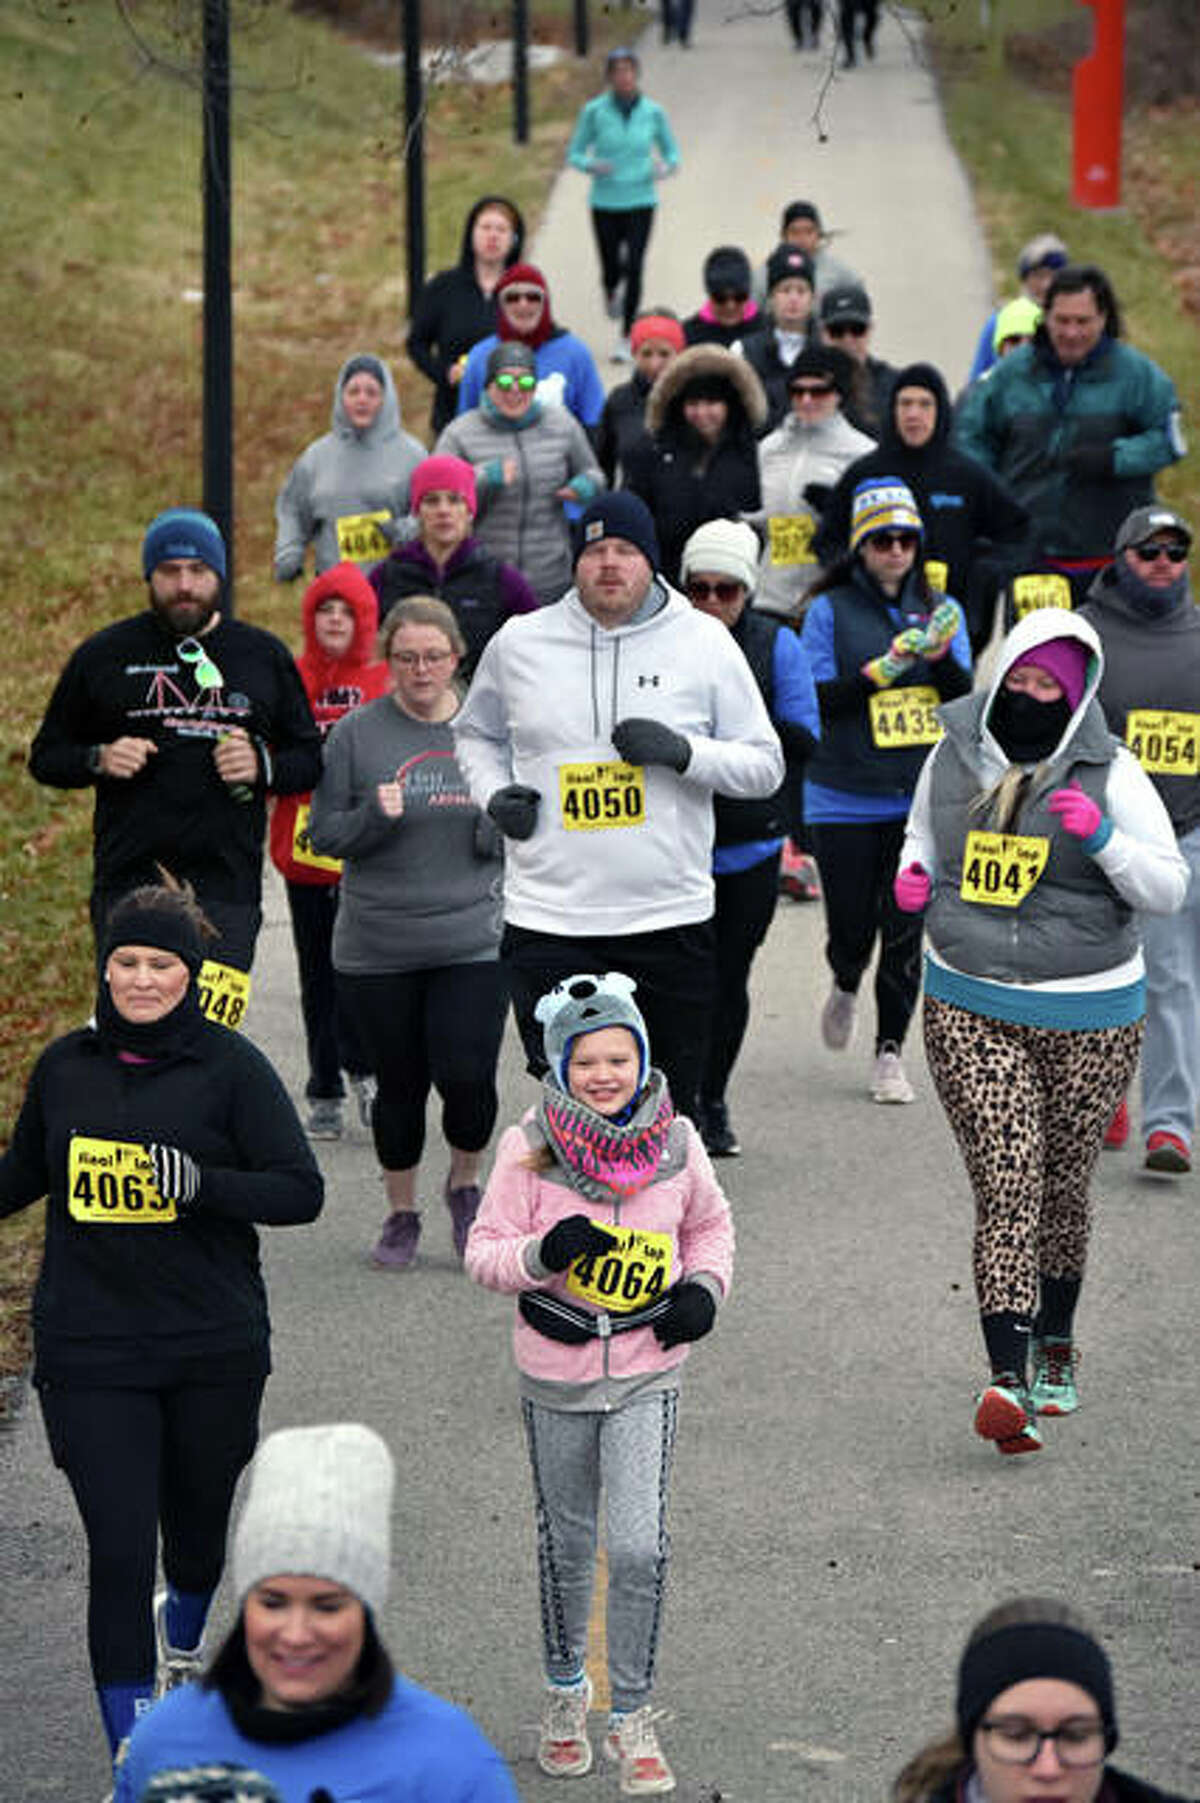 Runners compete in the New Year, New You 5K at SIUE on Saturday. The event was hosted by the Hearst Media Group.